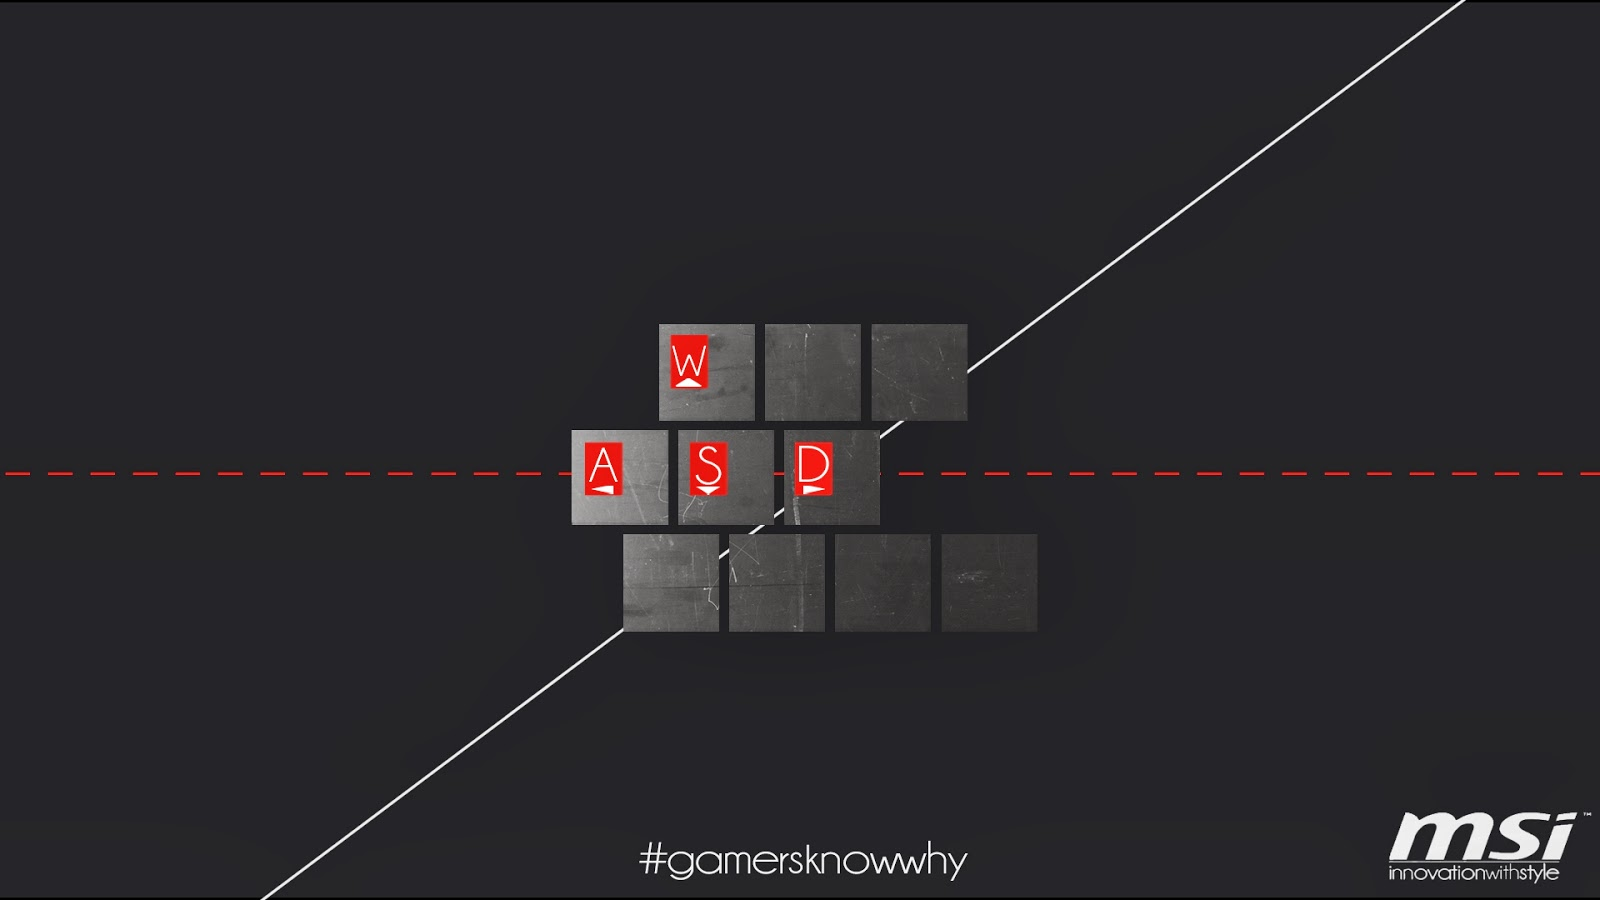 MSI WASD Gamers Know Why Widescreen HD Wallpaper J02